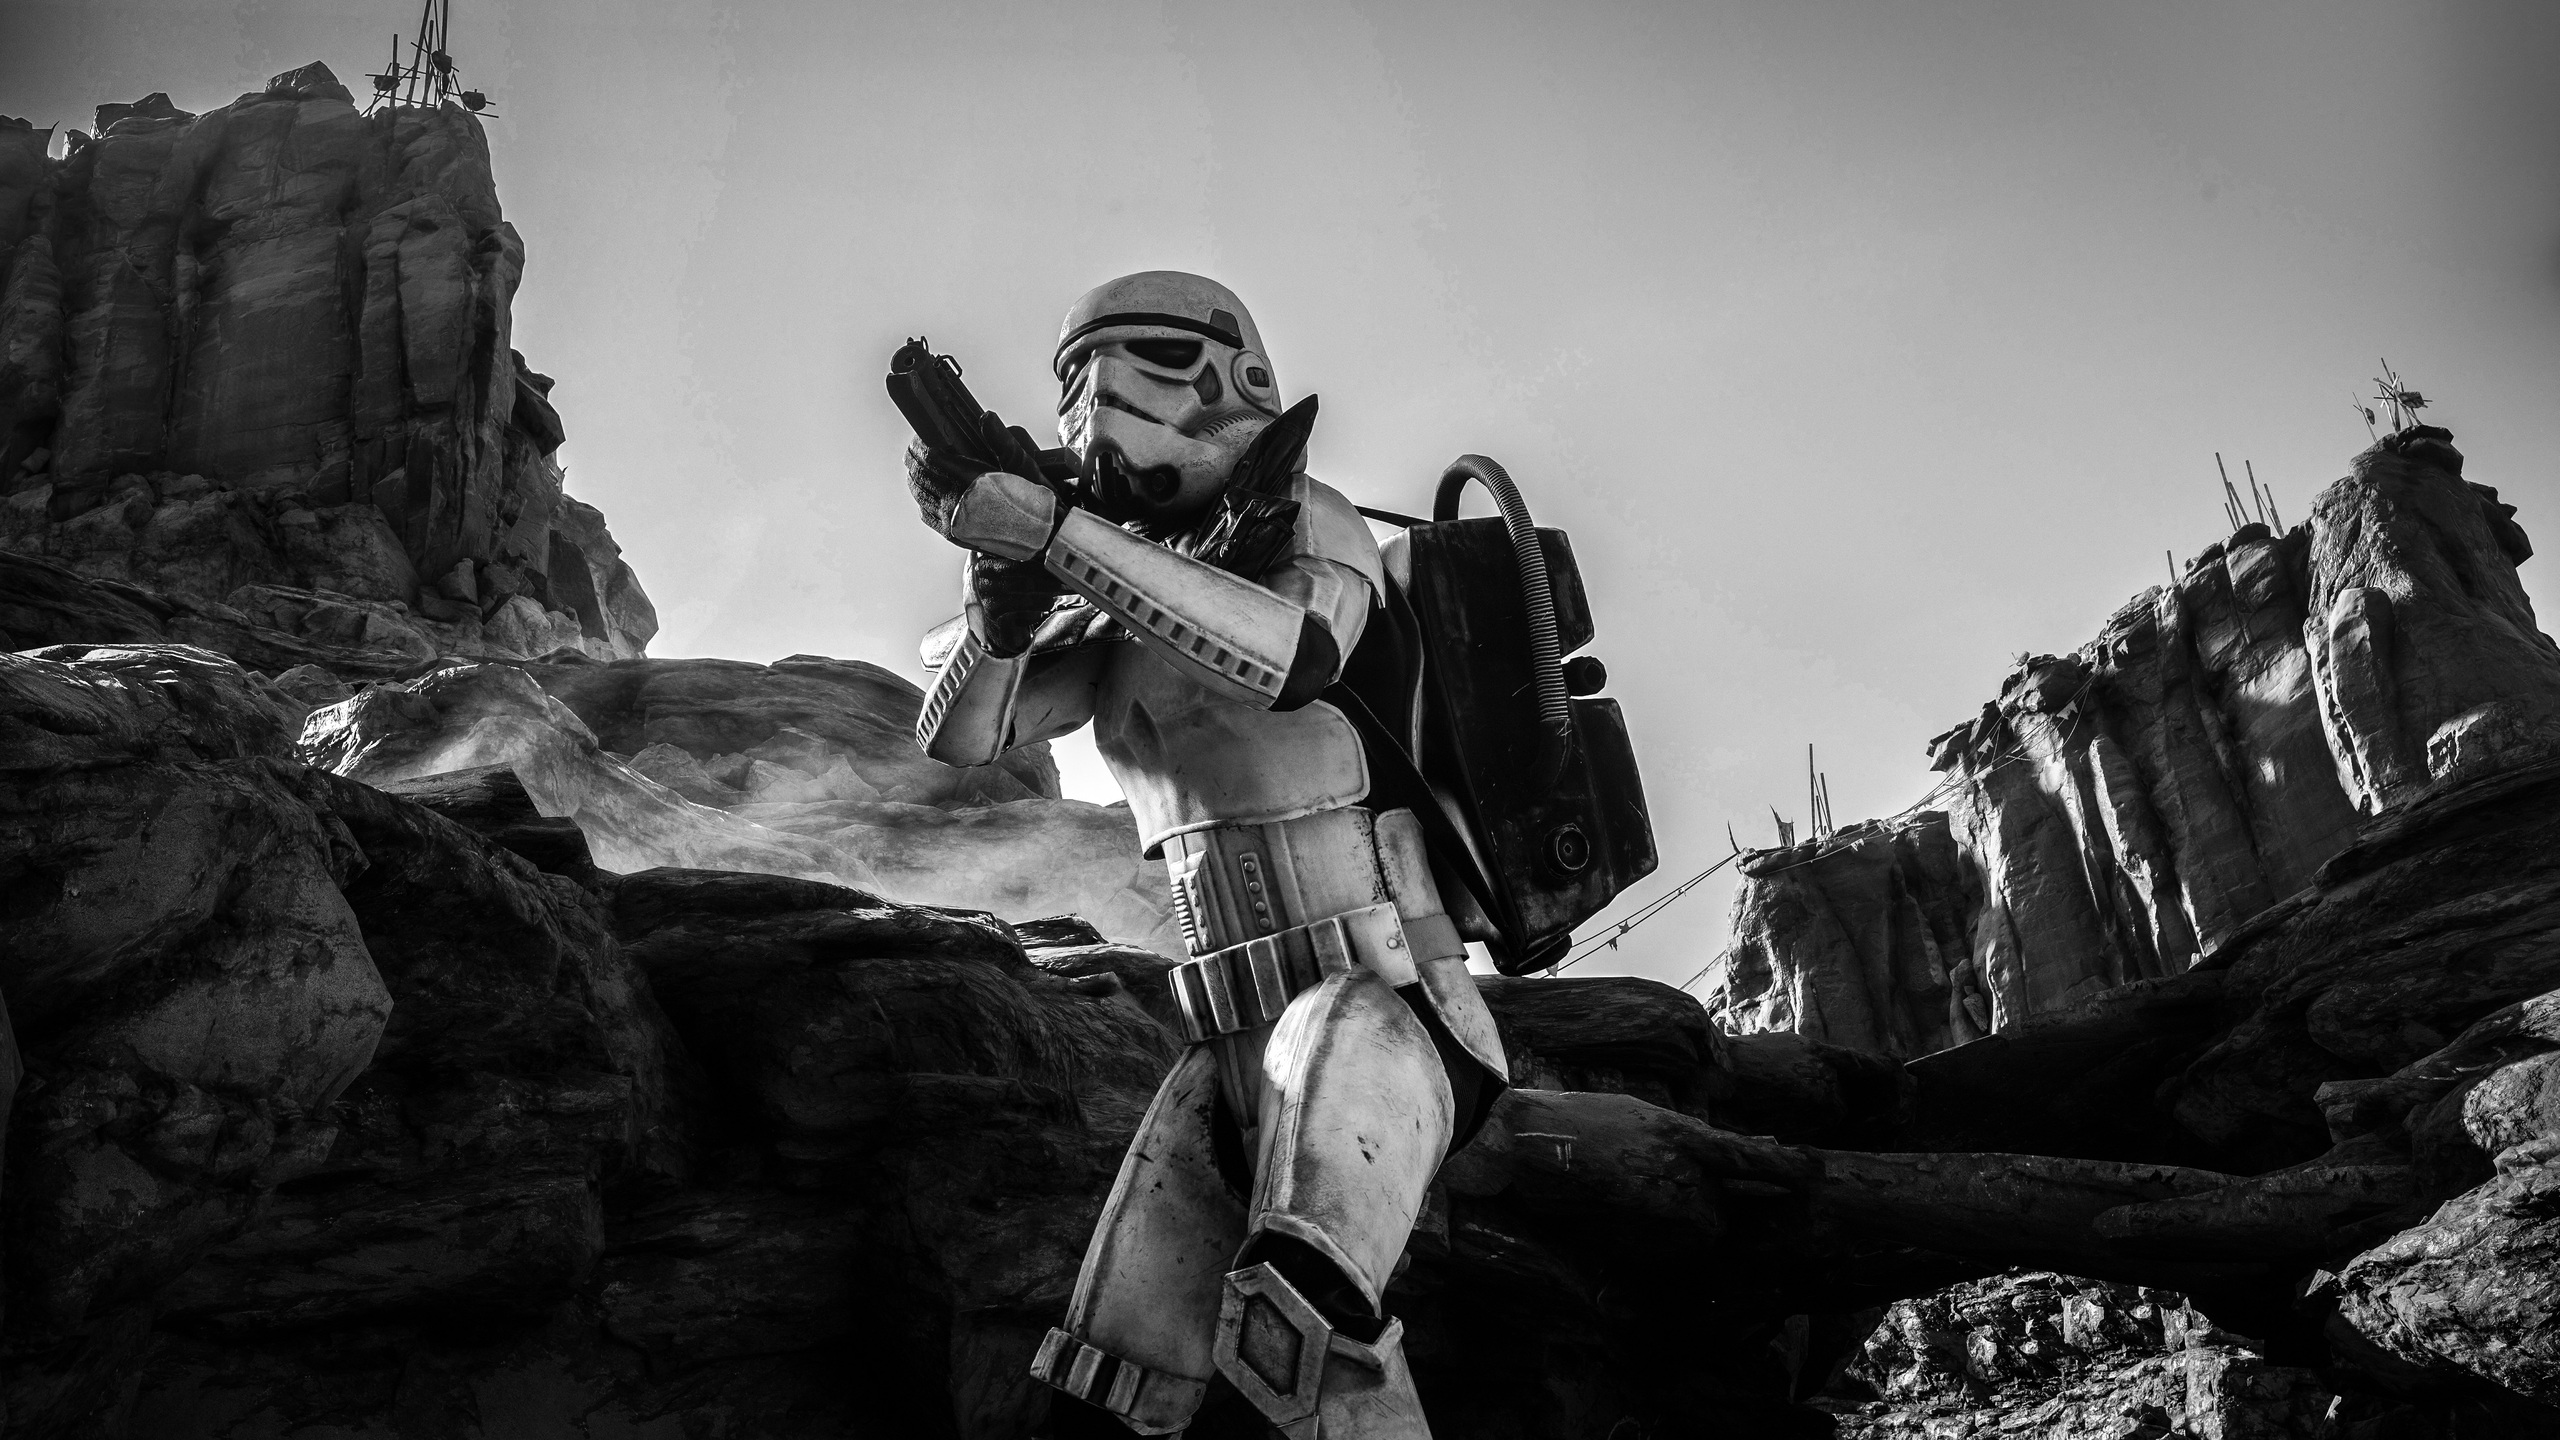 2560x1440 Stormtrooper 1440p Resolution Hd 4k Wallpapers Images Backgrounds Photos And Pictures